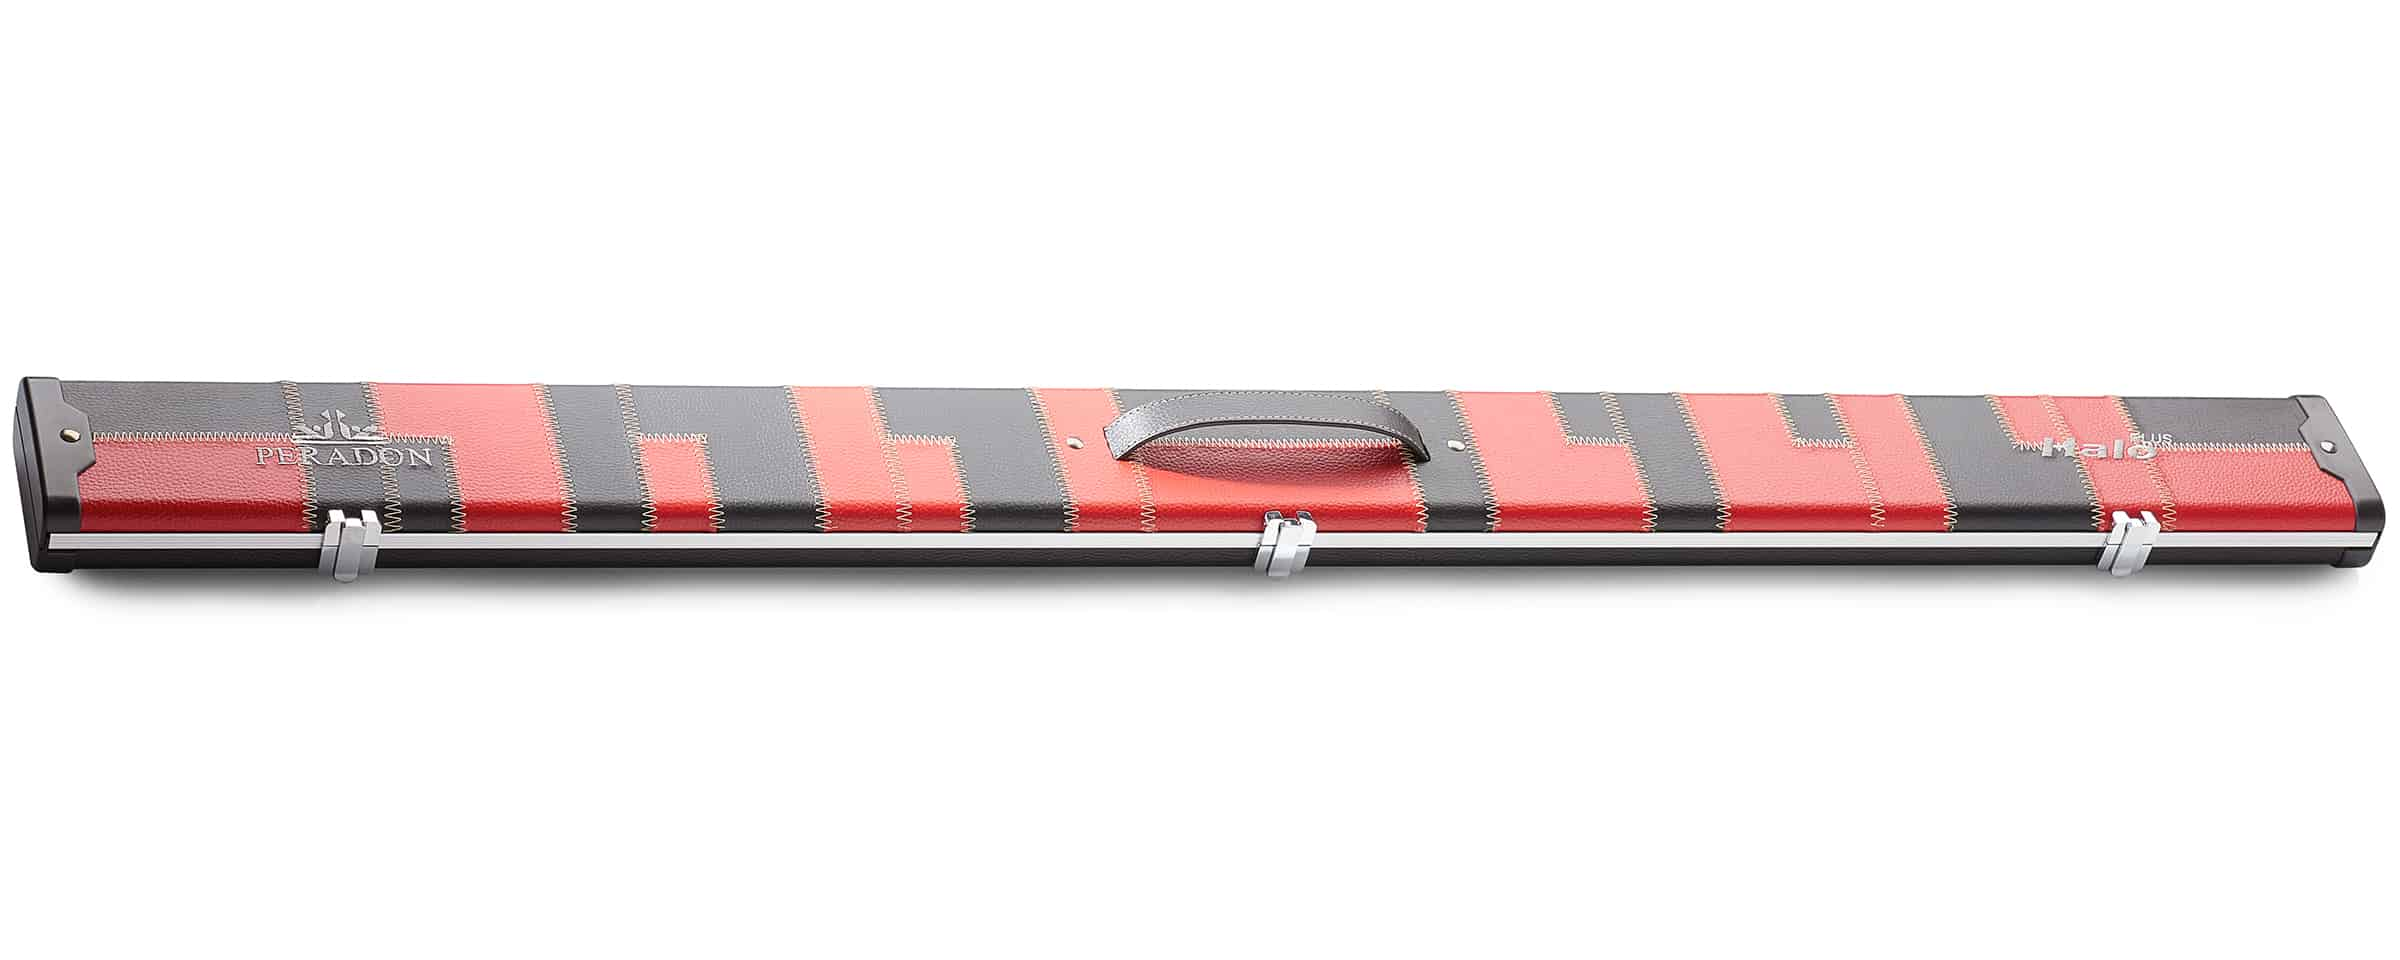 Peradon Halo Plus Black Red Patch 3/4 Jointed Extra Wide Snooker Cue Case